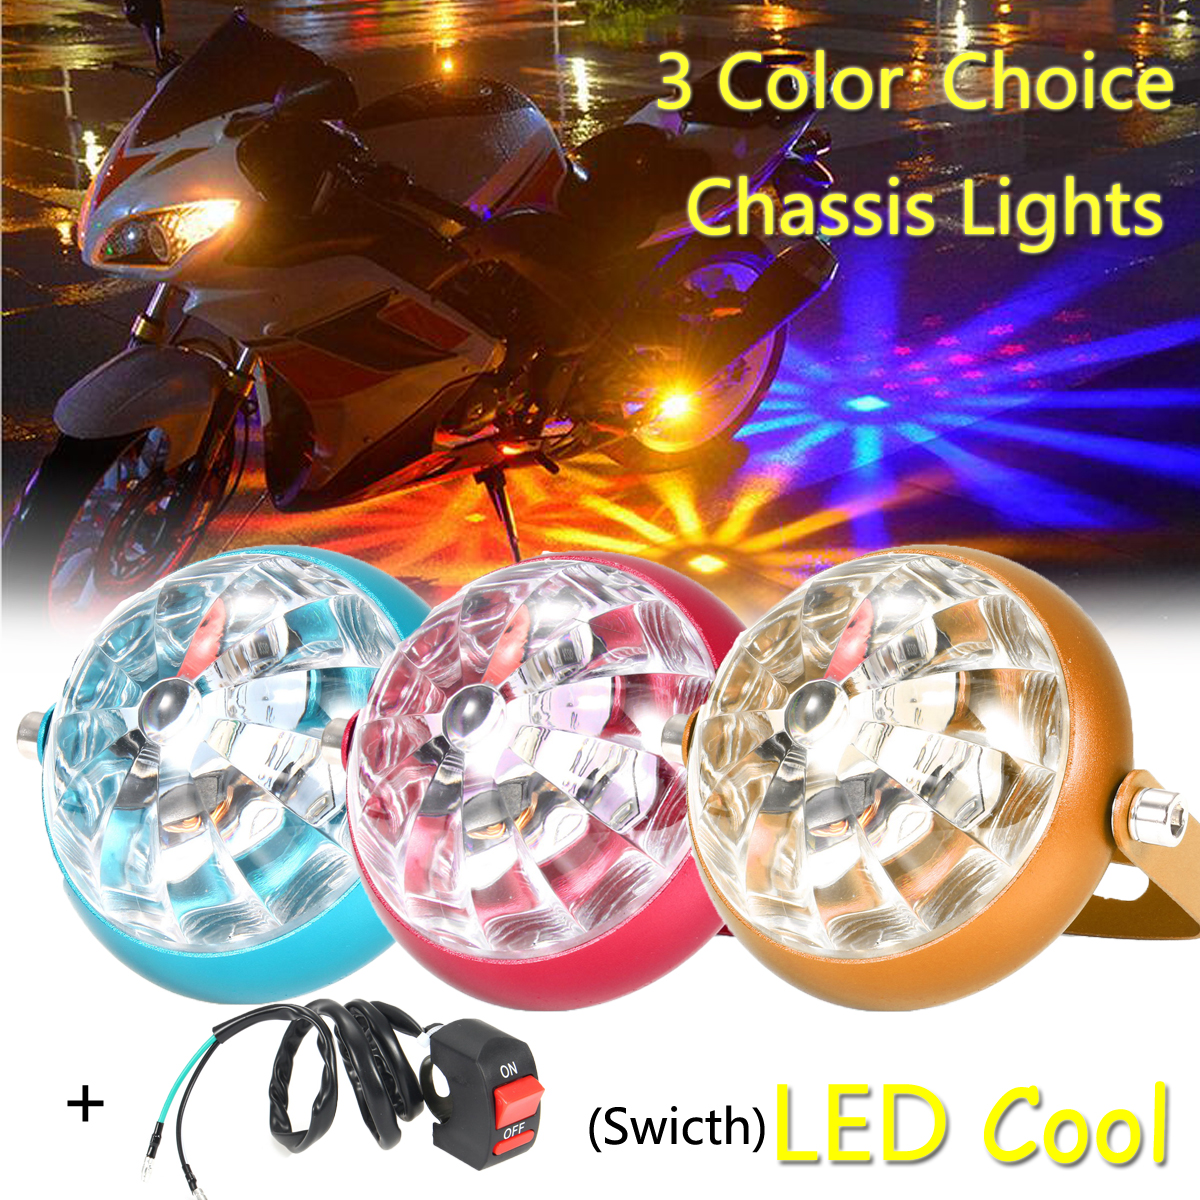 12V Yellow/Red/Blue Color Light+Switch Cool LED Chassis Motorcycle Decoration Lights